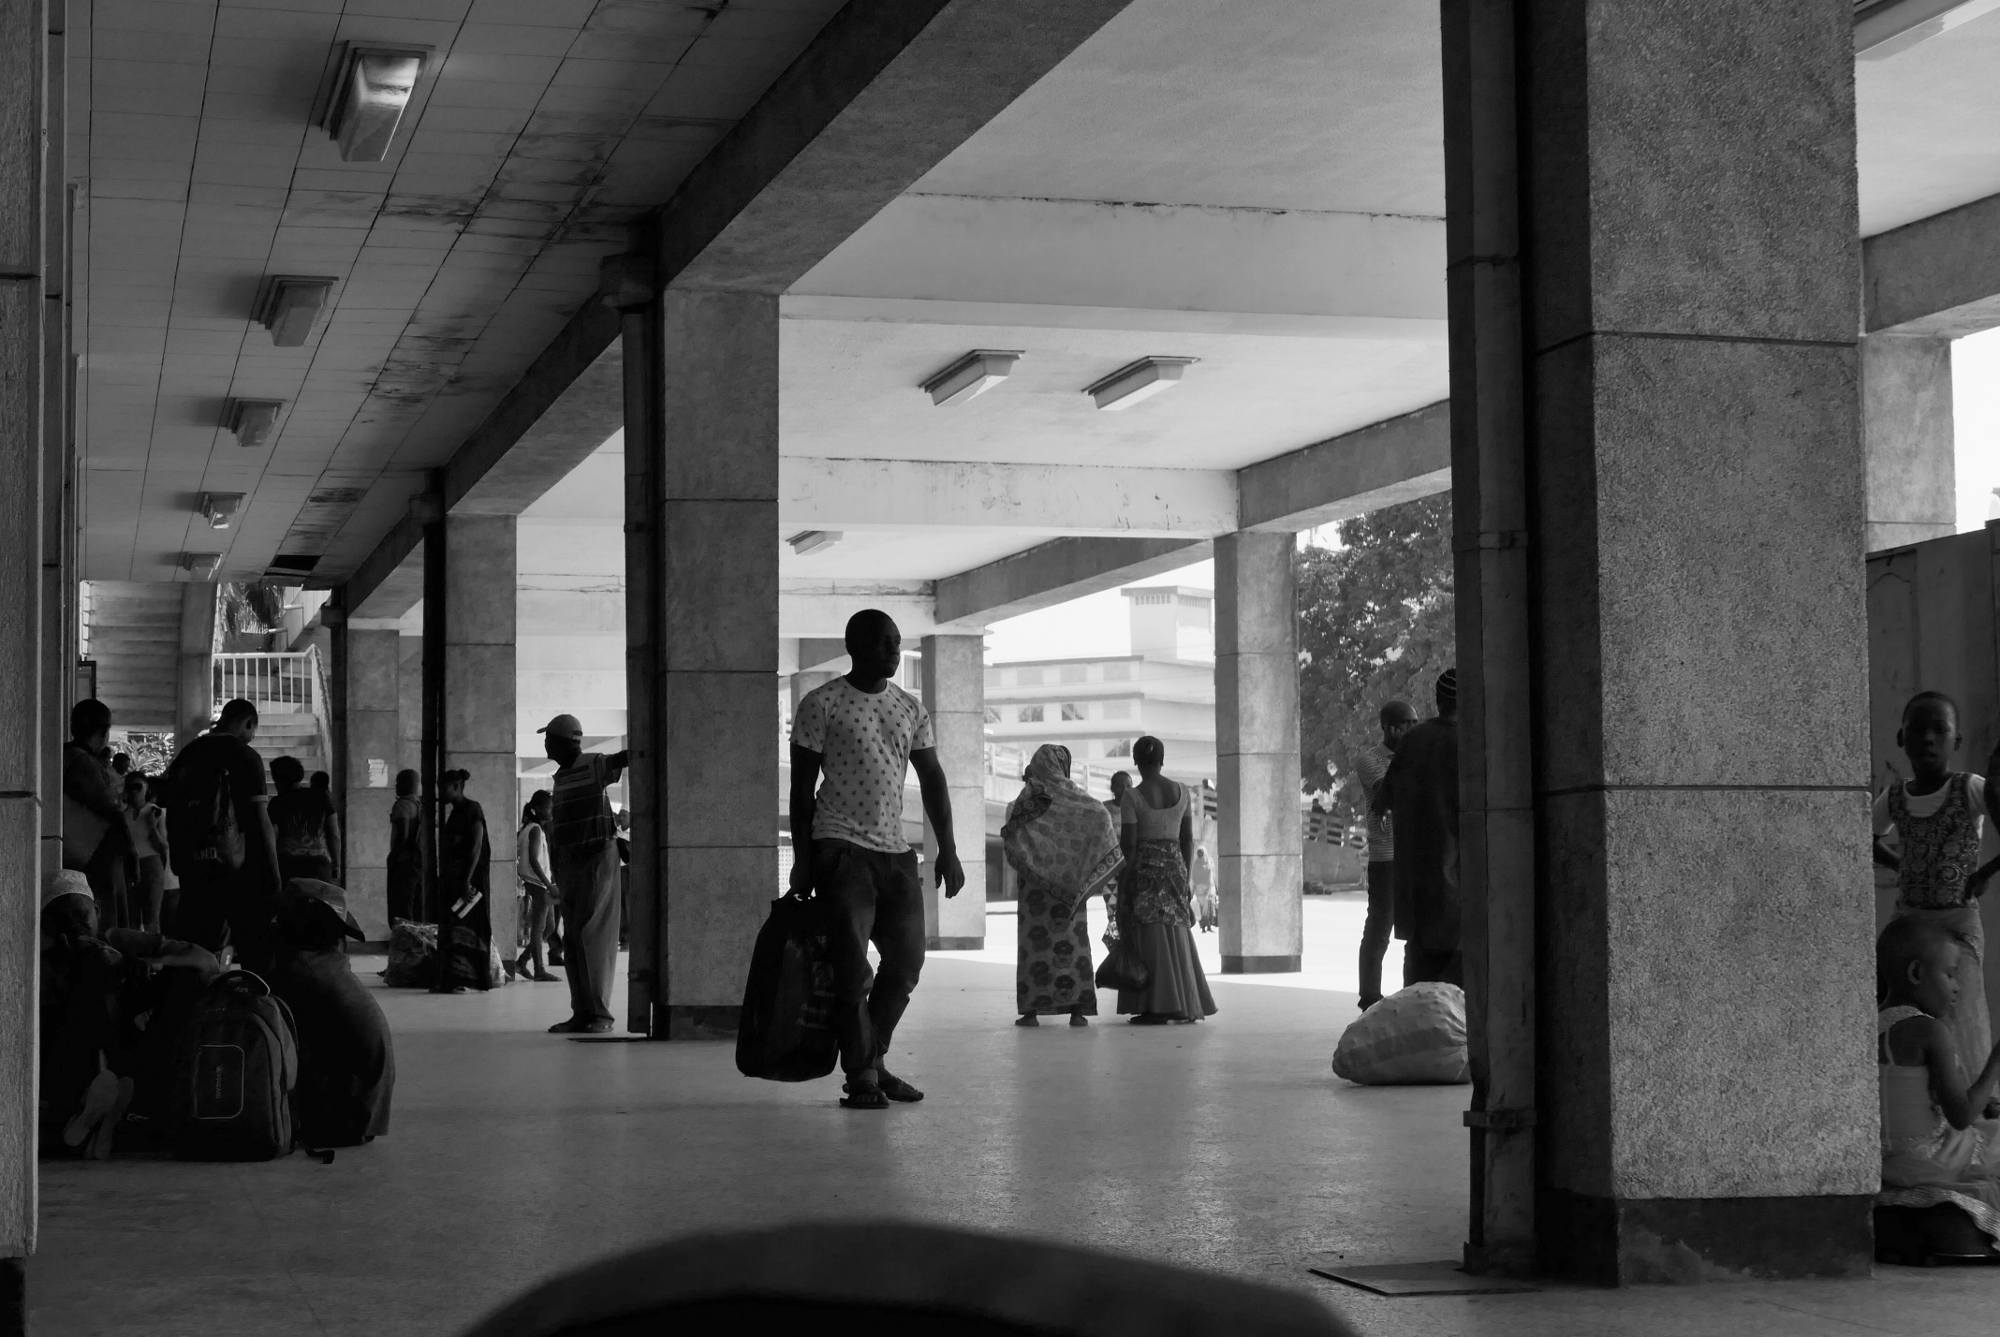 Waiting at Tazara Station, Dar es Salaam